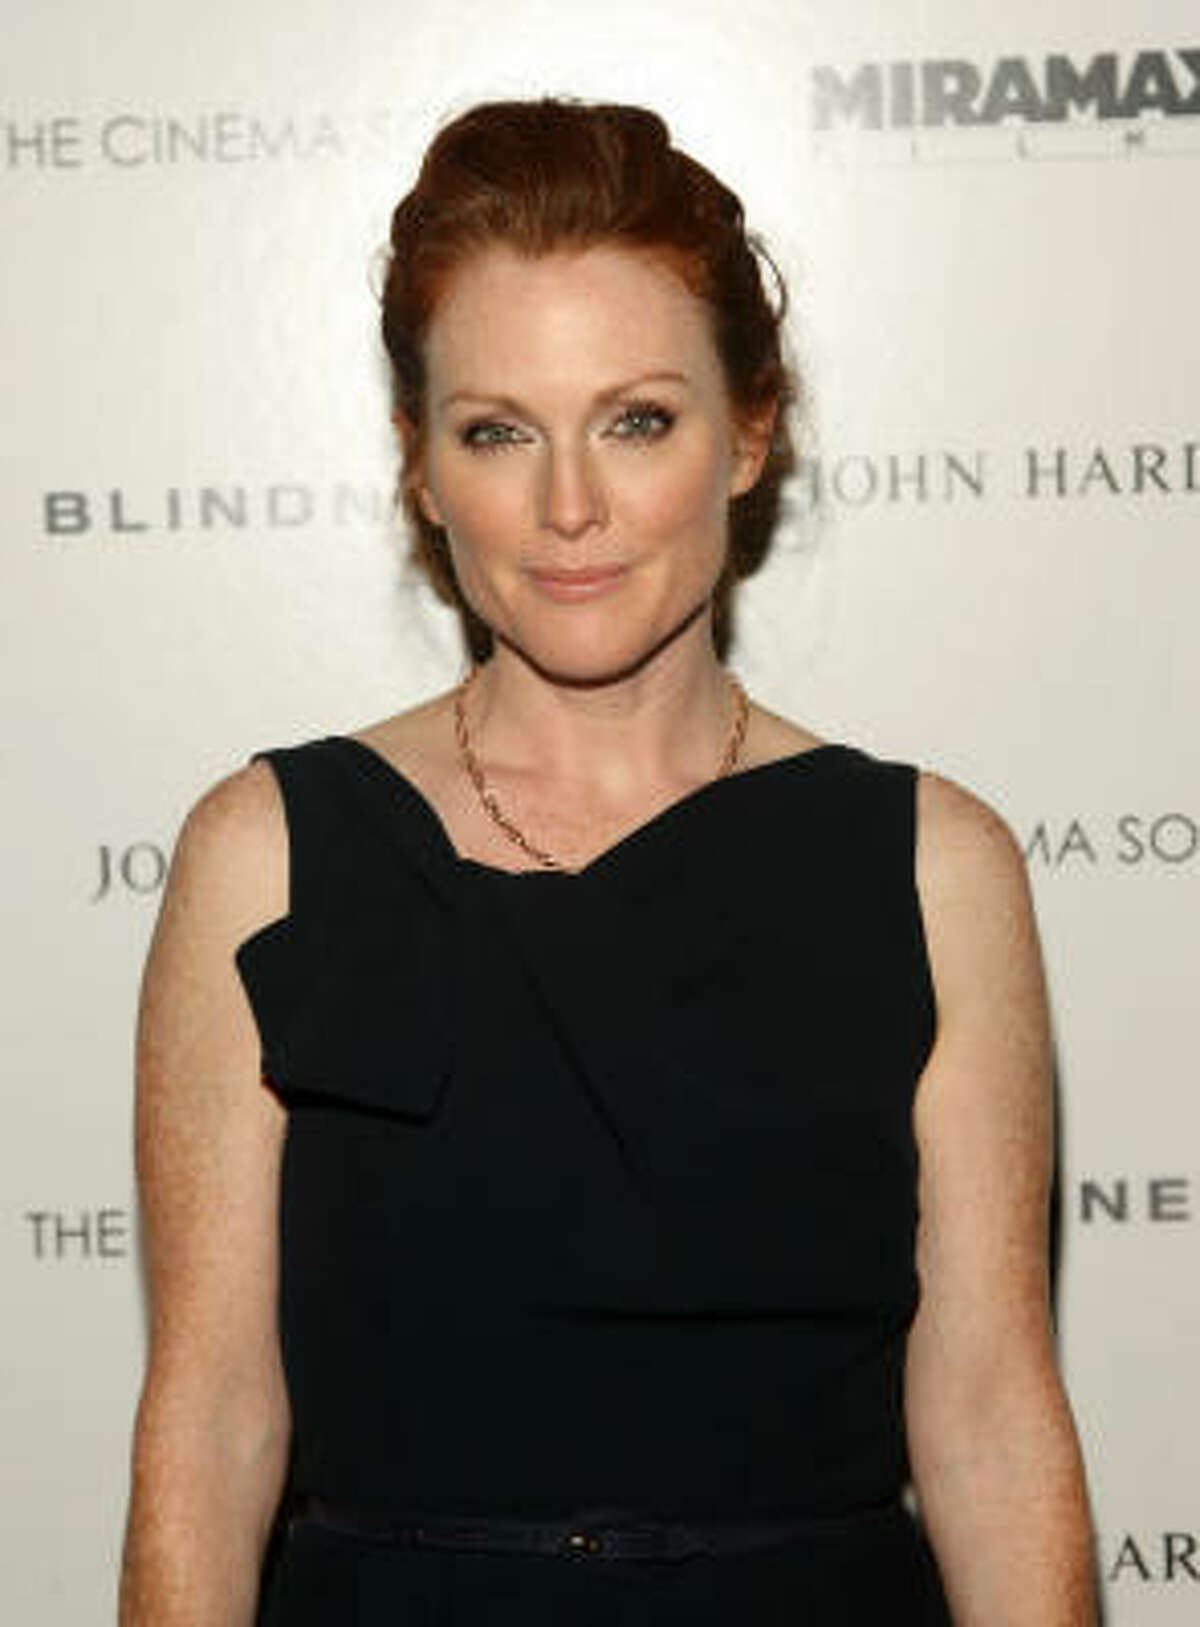 Julianne Moore The redheaded actress is an atheist who supports a number of progressive causes, including abortion rights and same-sex marriage.